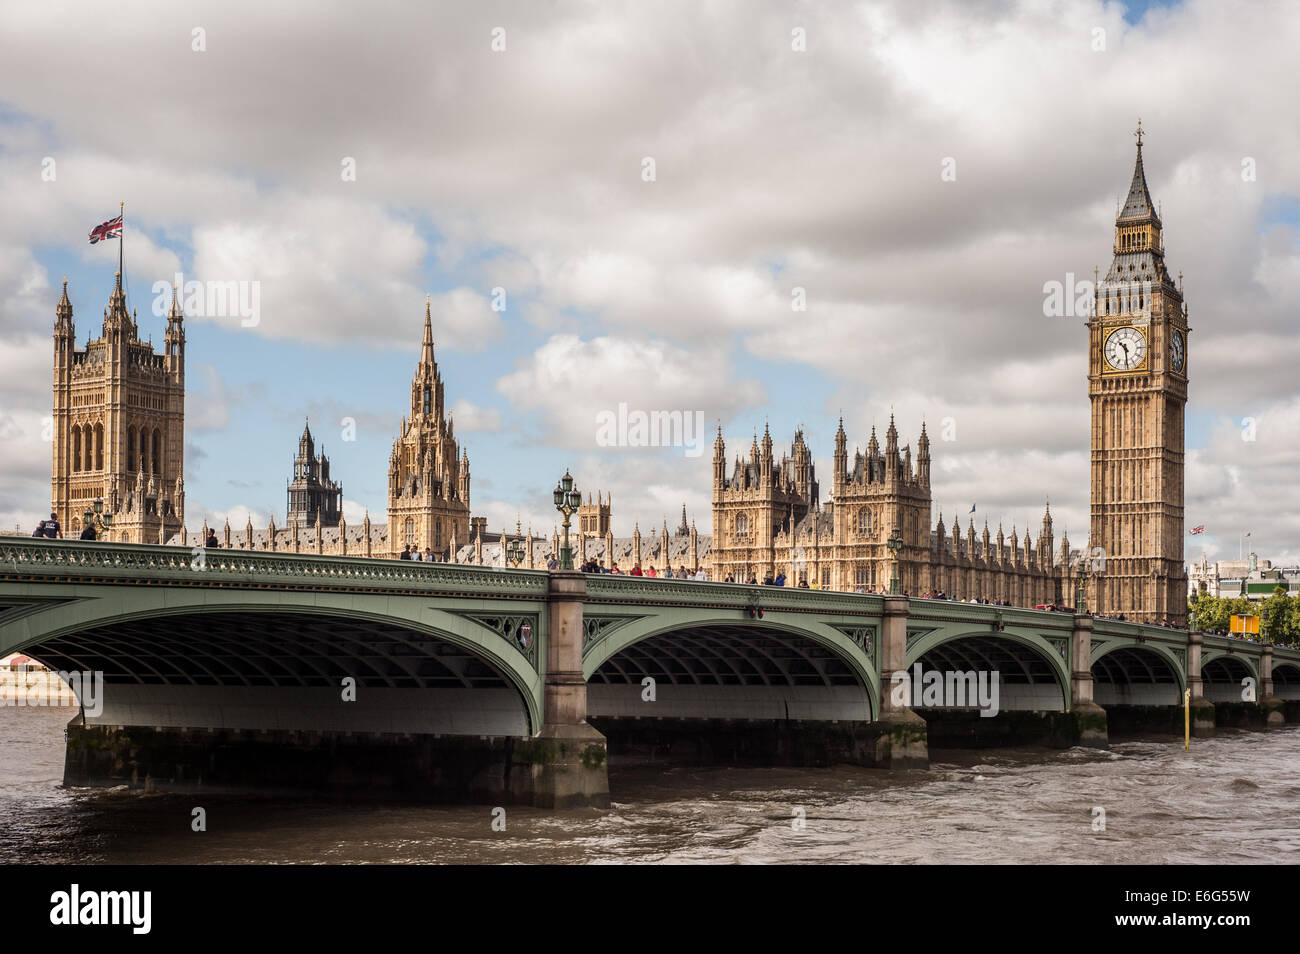 The Houses of Parliament, the Big Ben with people crossing Westminster Bridge in London on a cloudy day - Stock Image